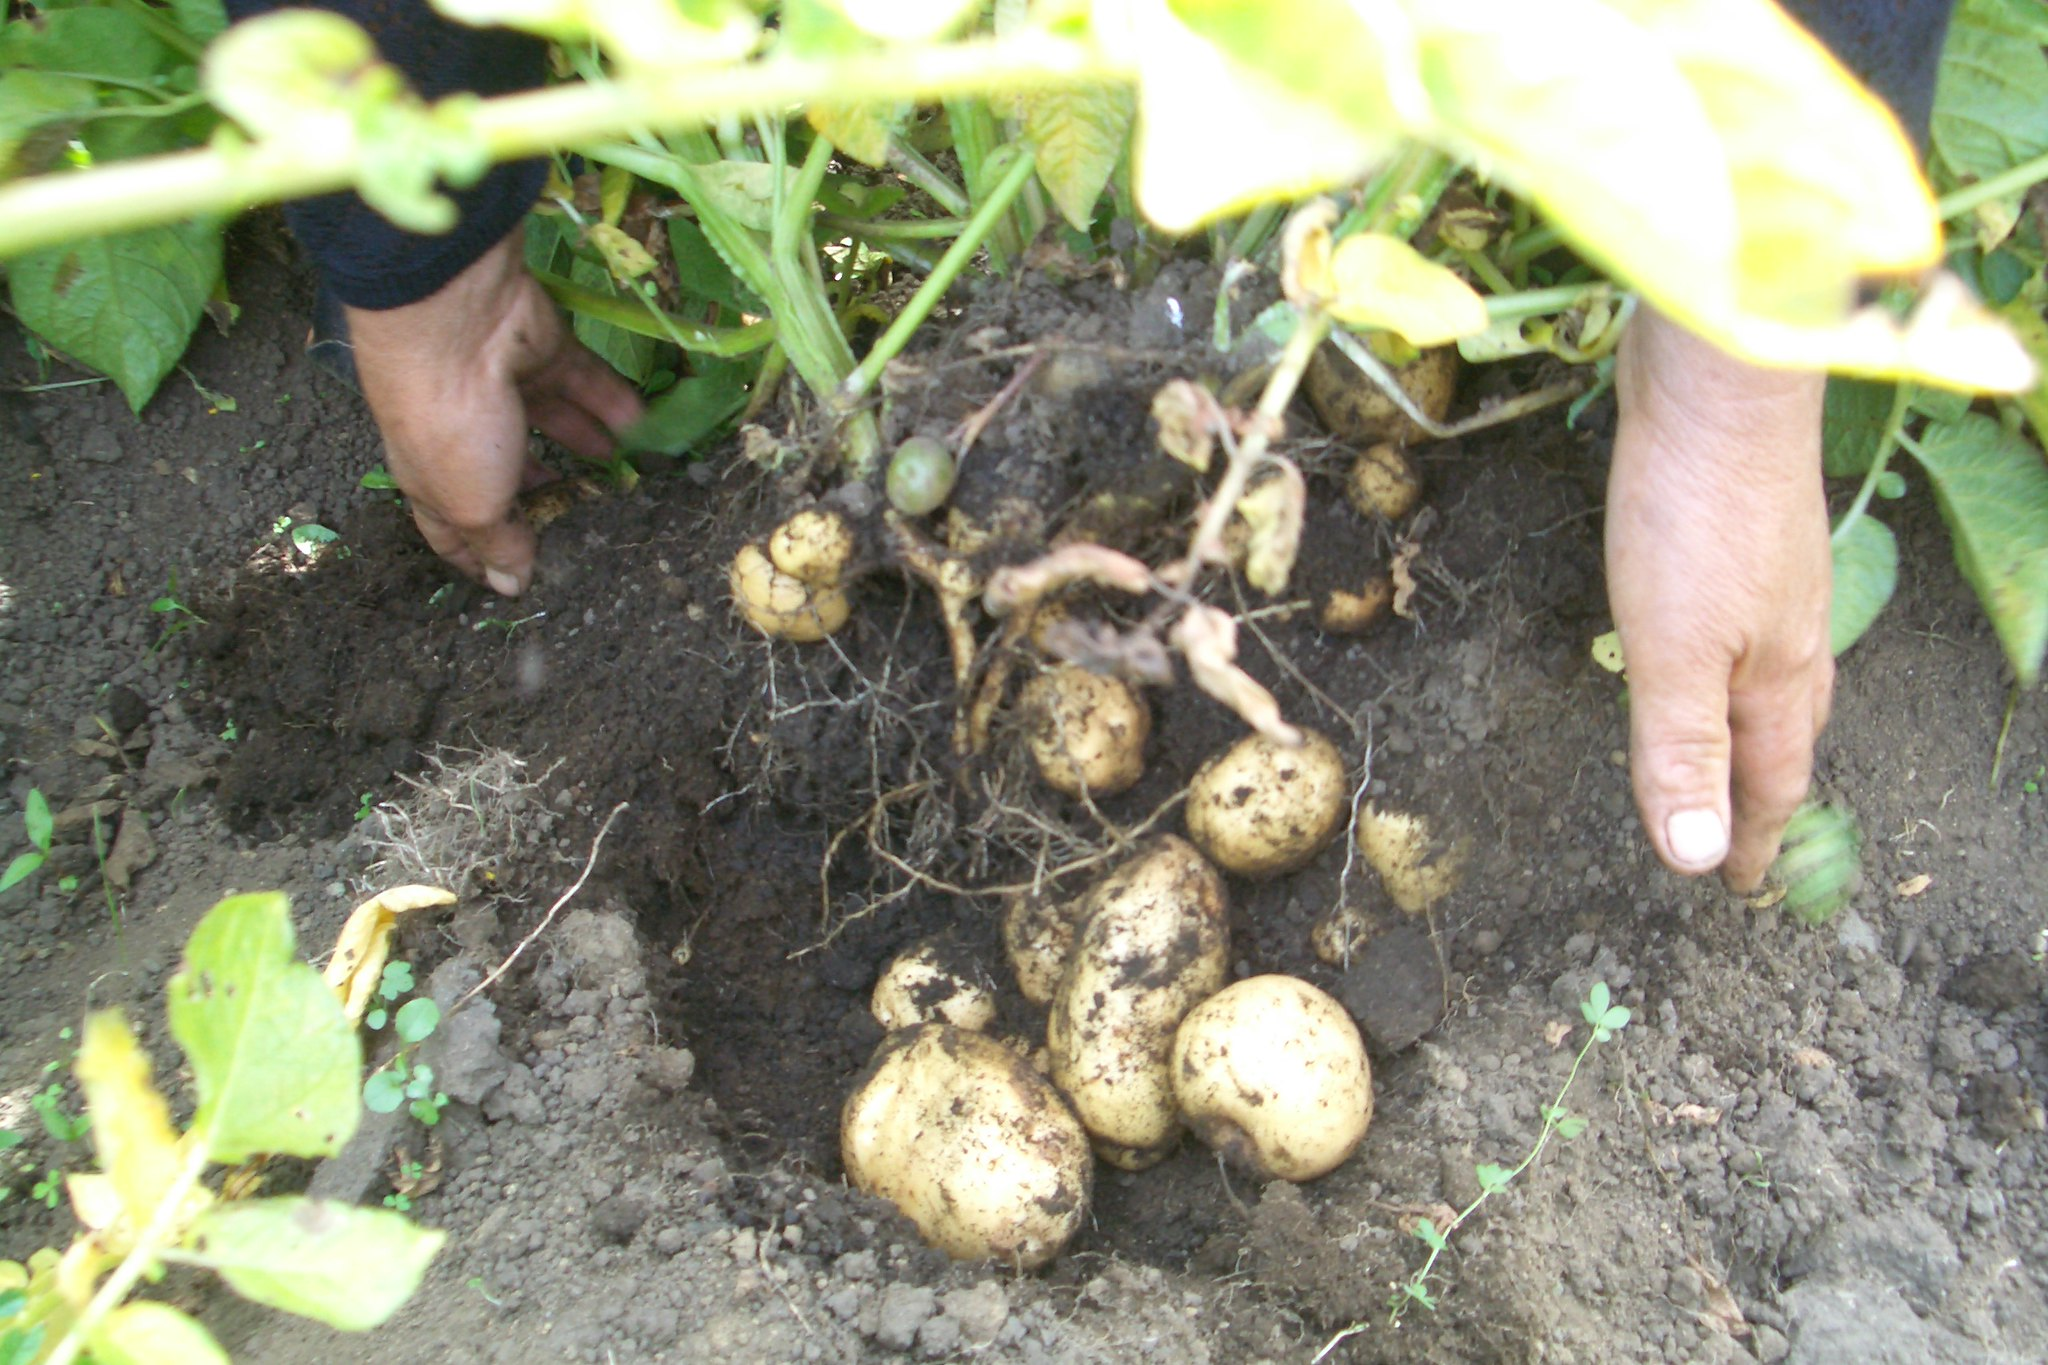 Potato variety, Chiloé island (Chile)